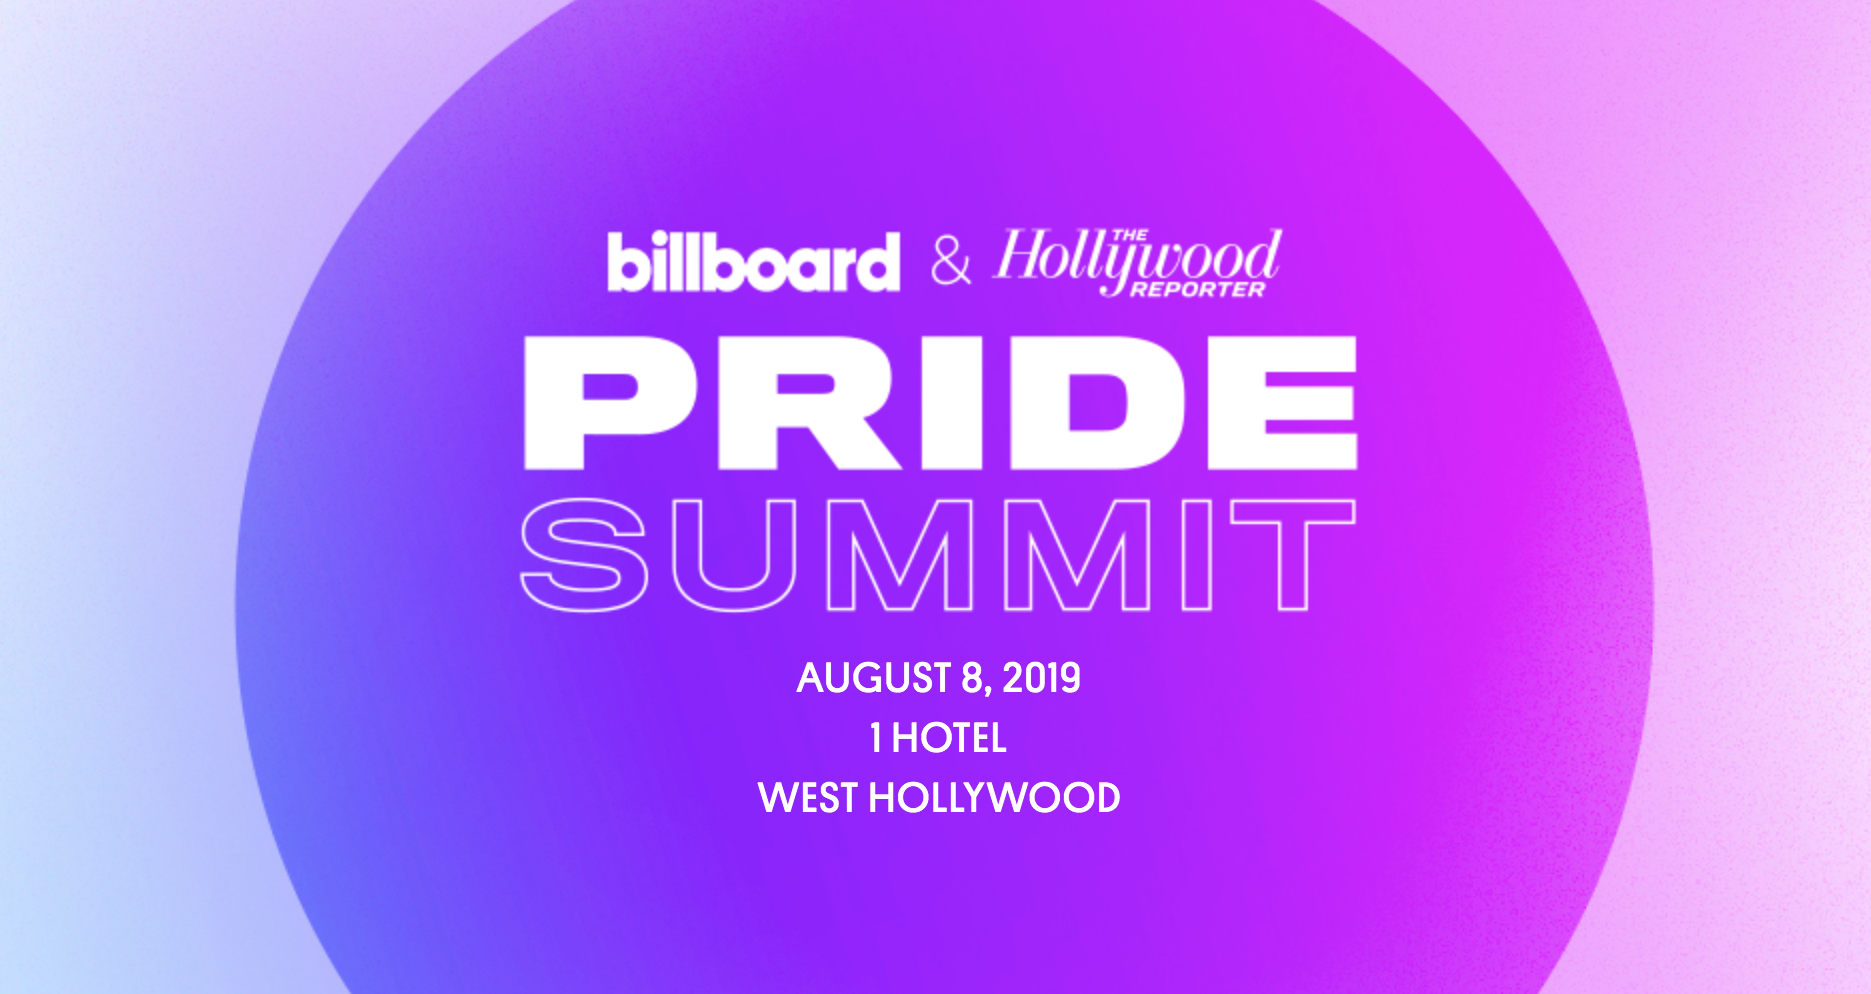 billboard-the-hollywood-reporter-pride-summit-announcement